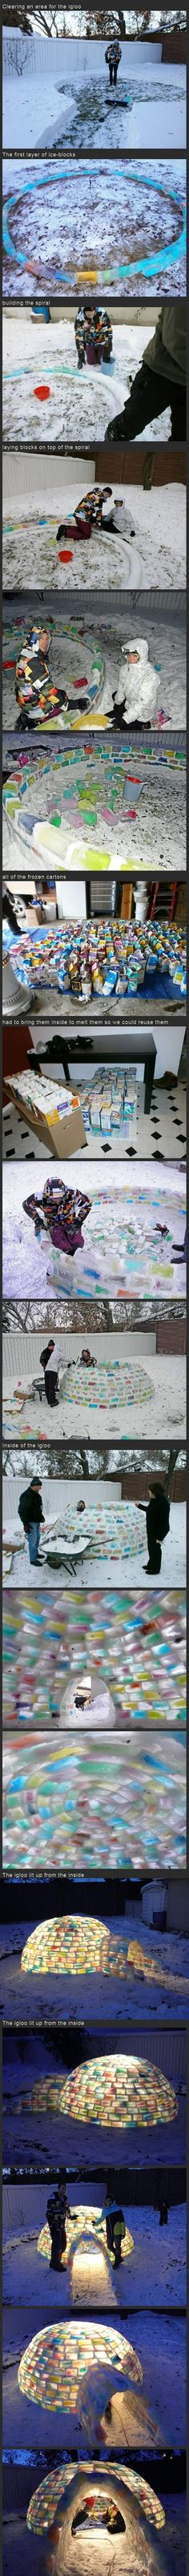 How to Make an Awesome Igloo!